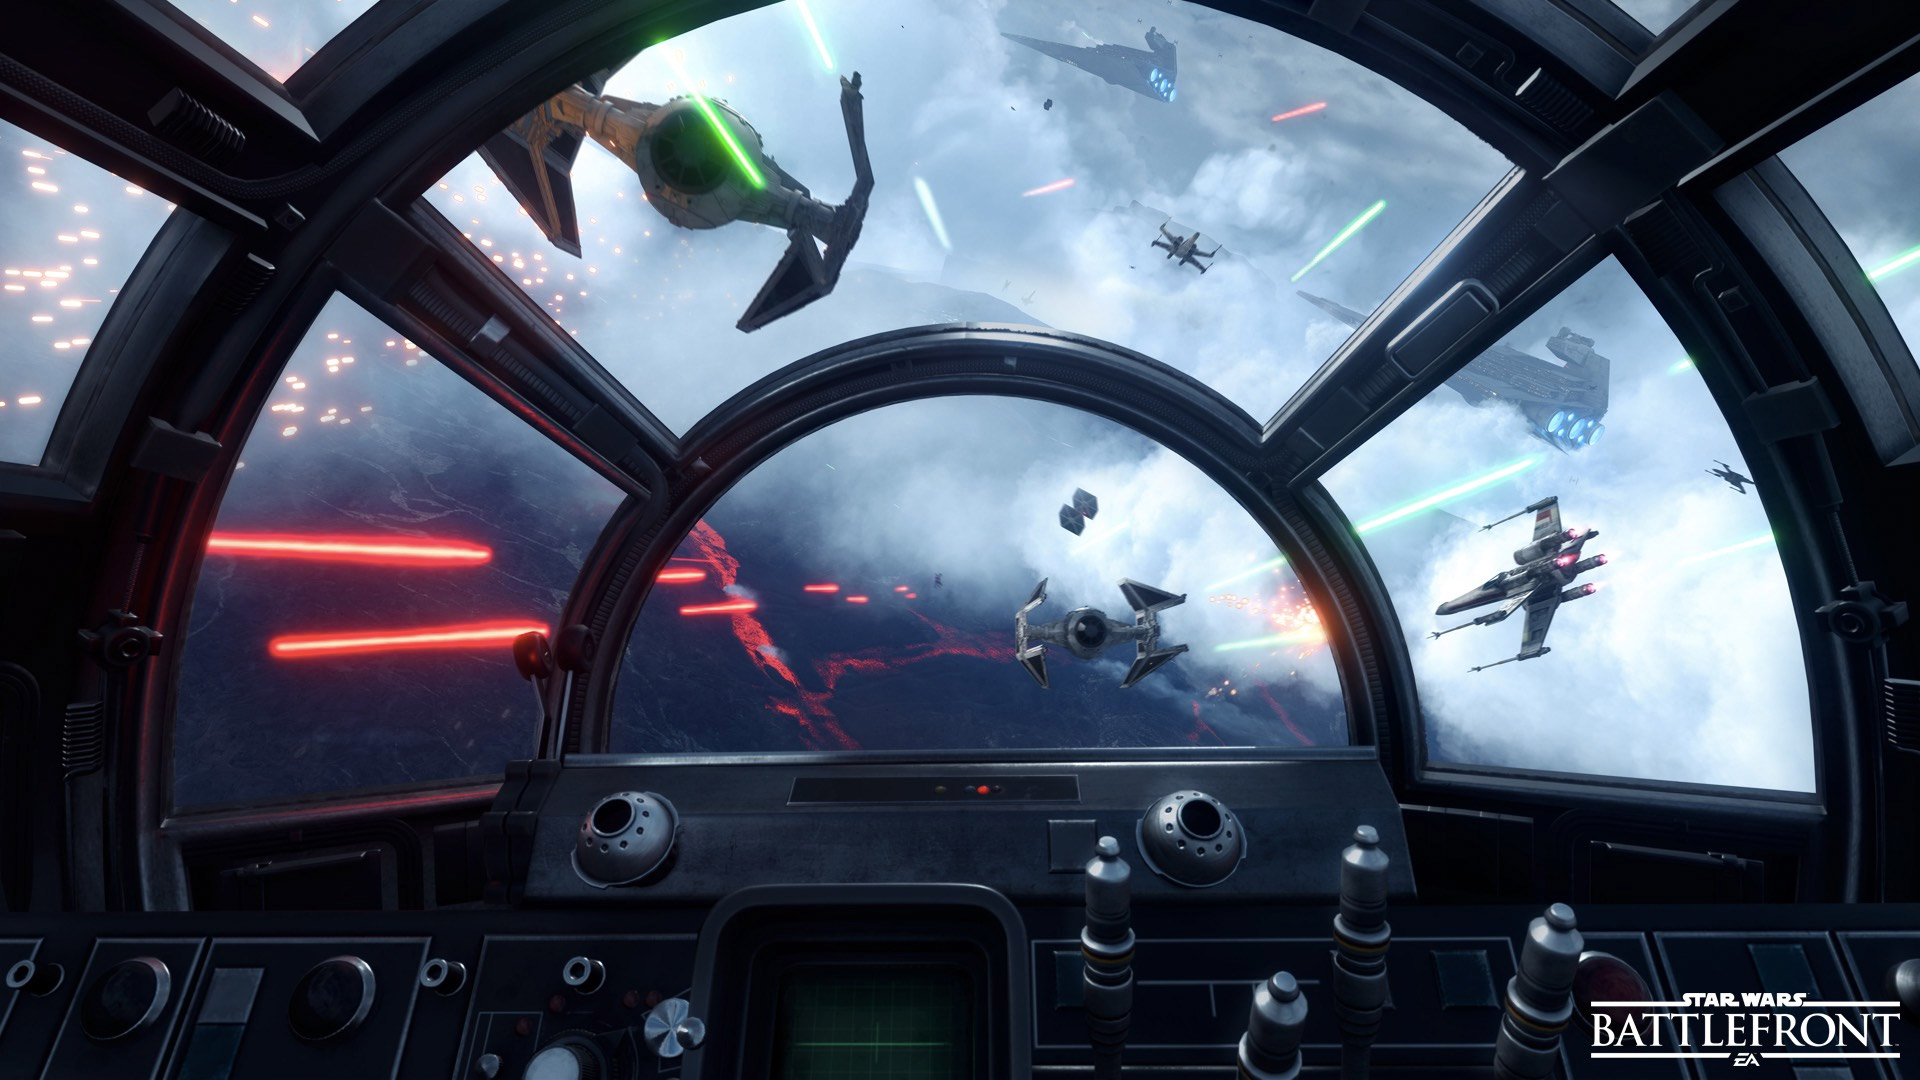 We played Star Wars Battlefront's new Fighter Squadron mode